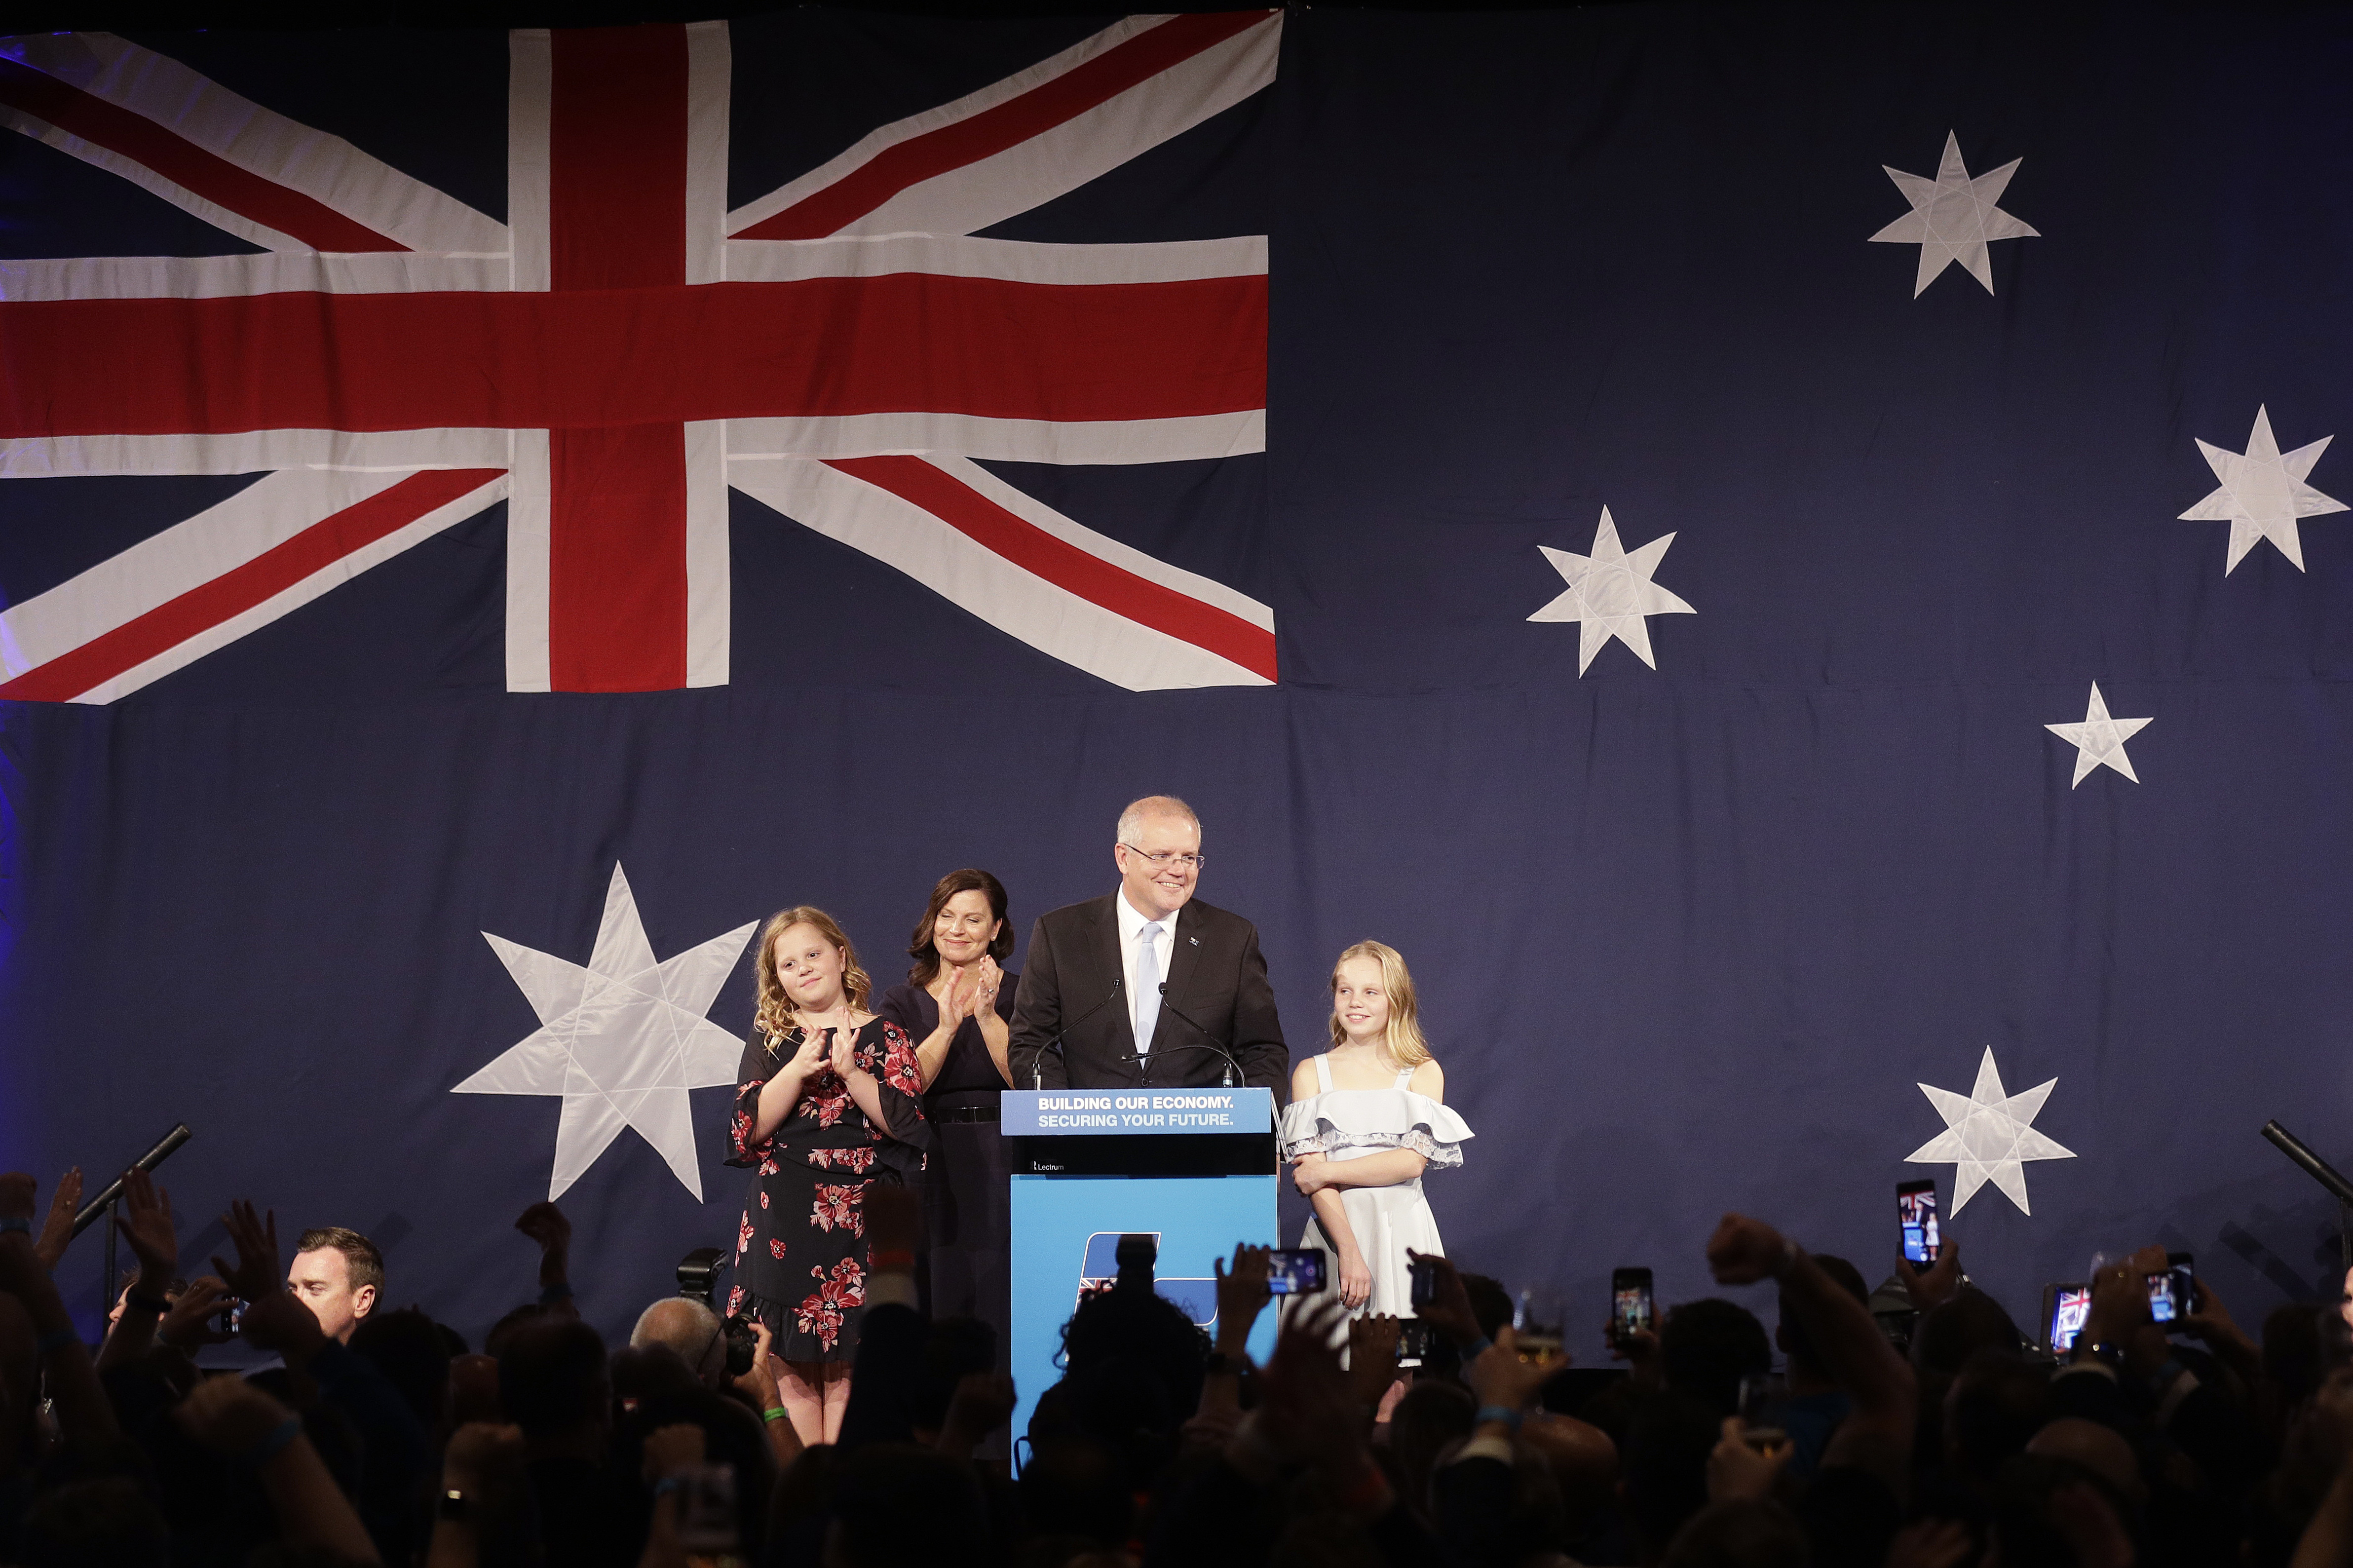 Voters Down Under put Australian interests first; another win for Trump-style nationalism?